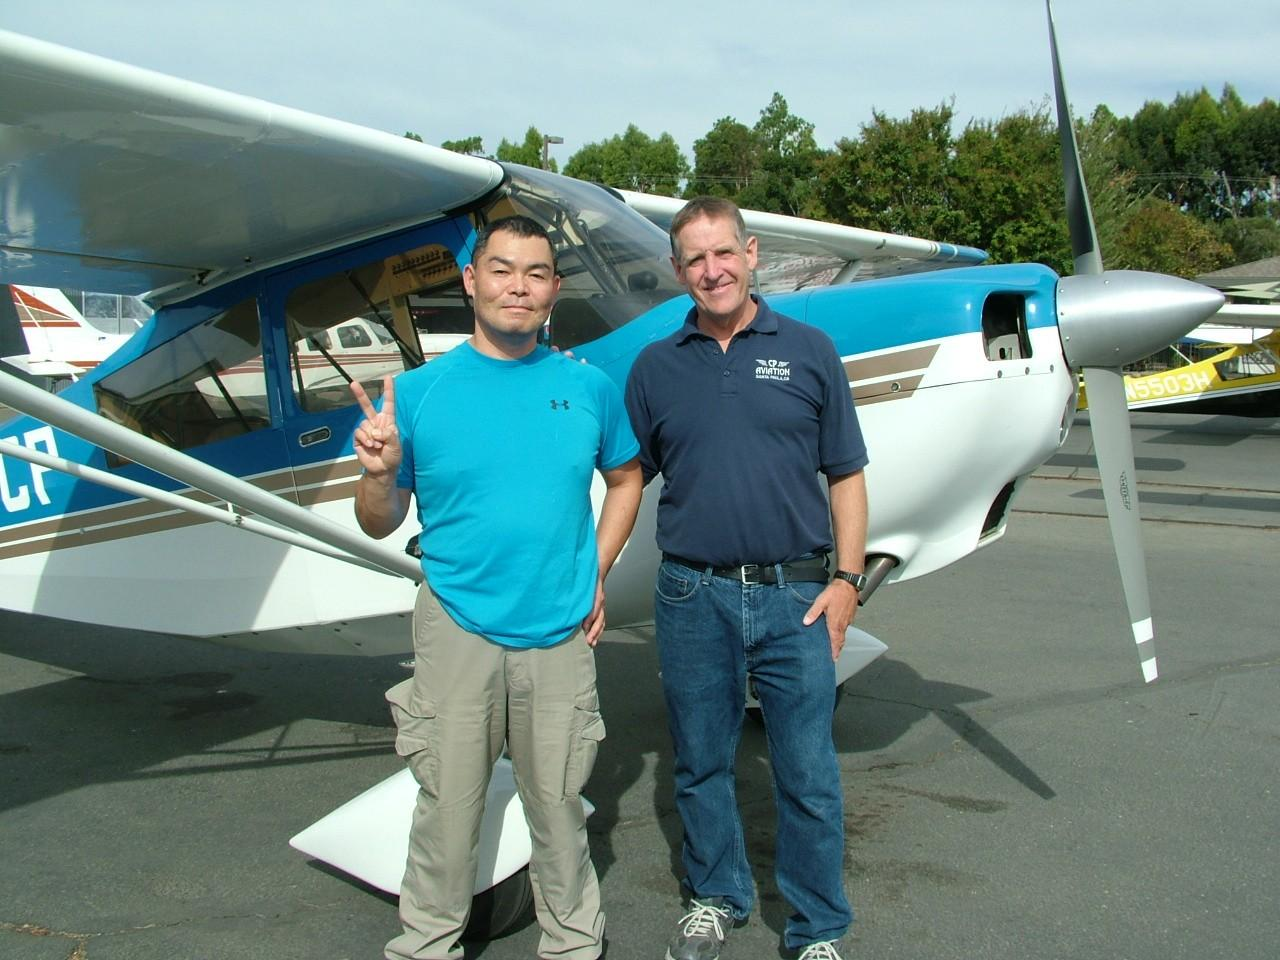 Tailwheel Endorsement - Isao Yamasita